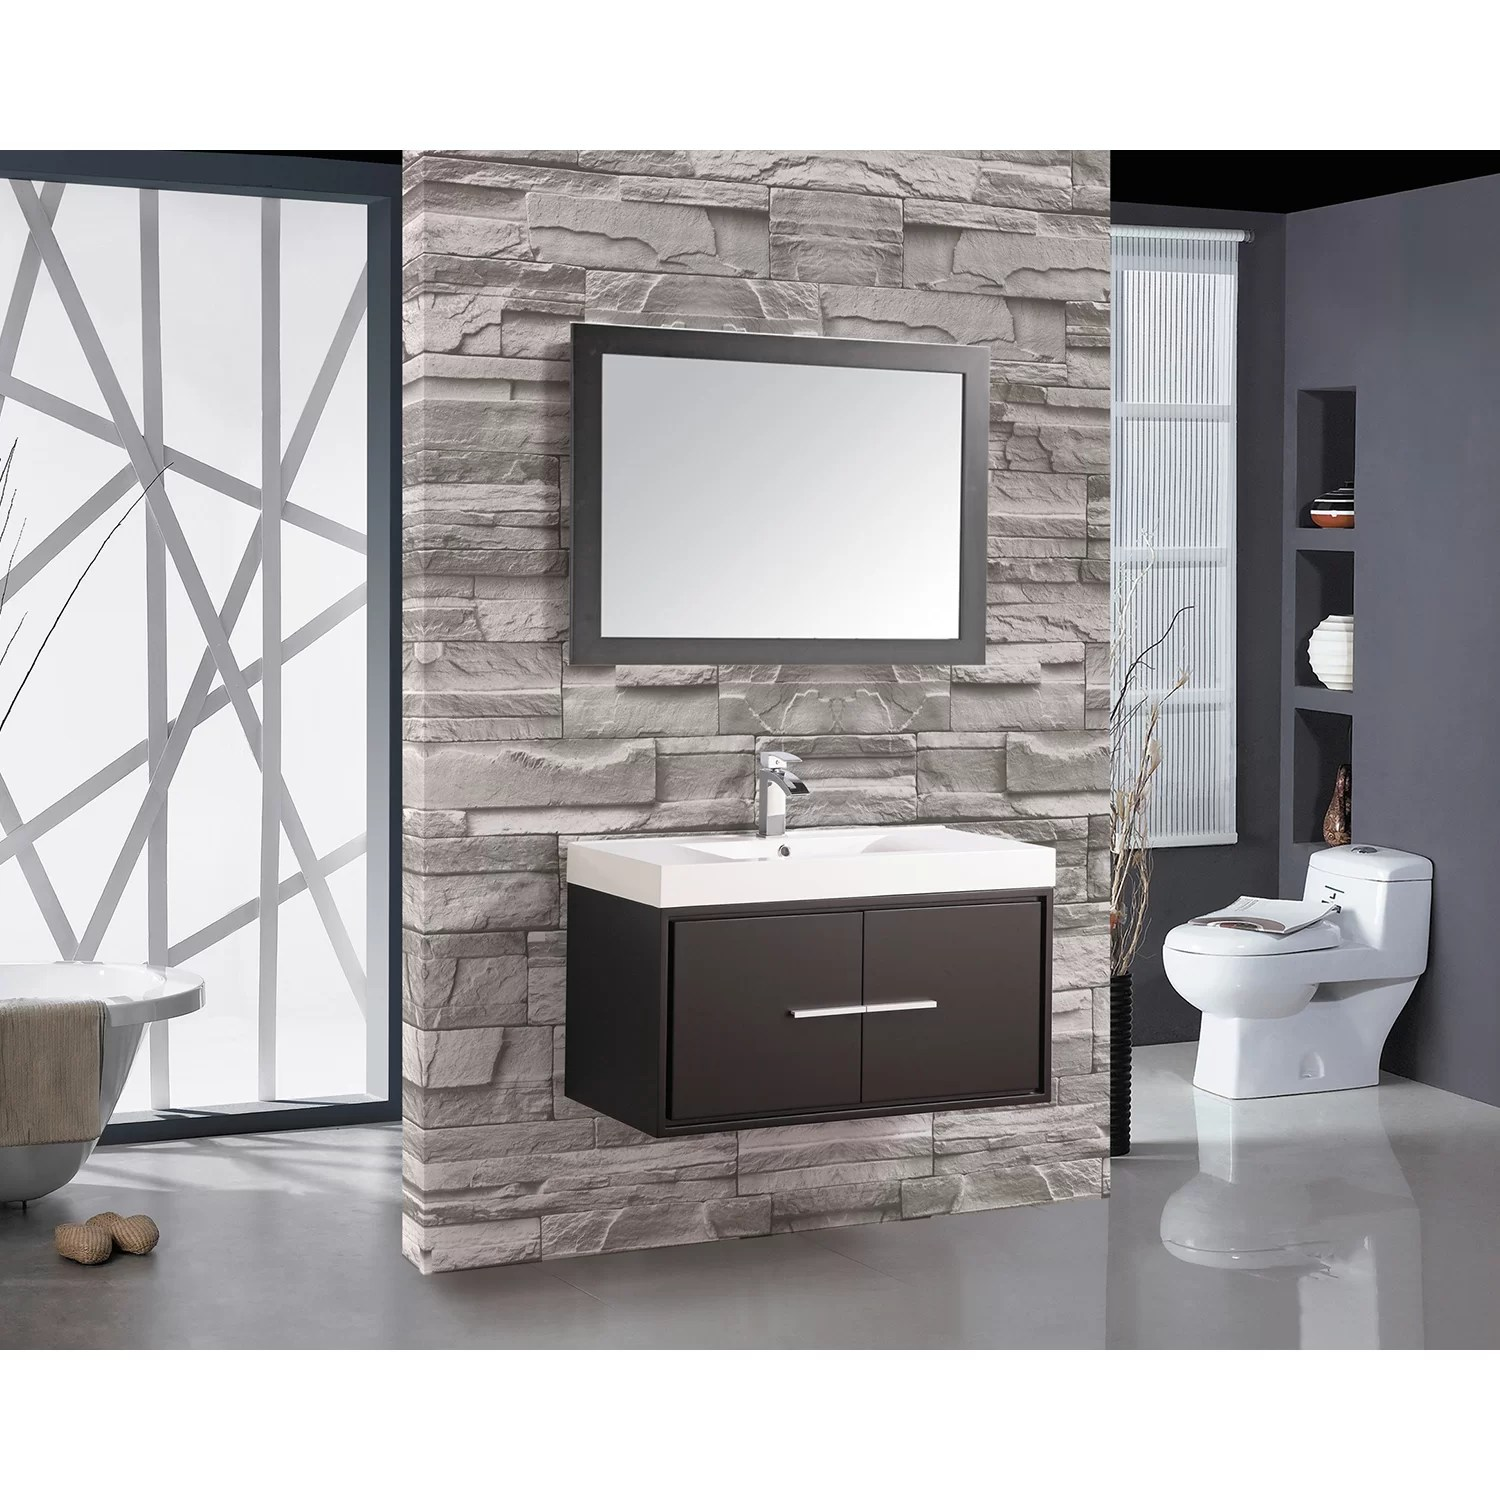 30 Floating Bathroom Vanity Mtdvanities Cypress 36 Quot Single Floating Bathroom Vanity